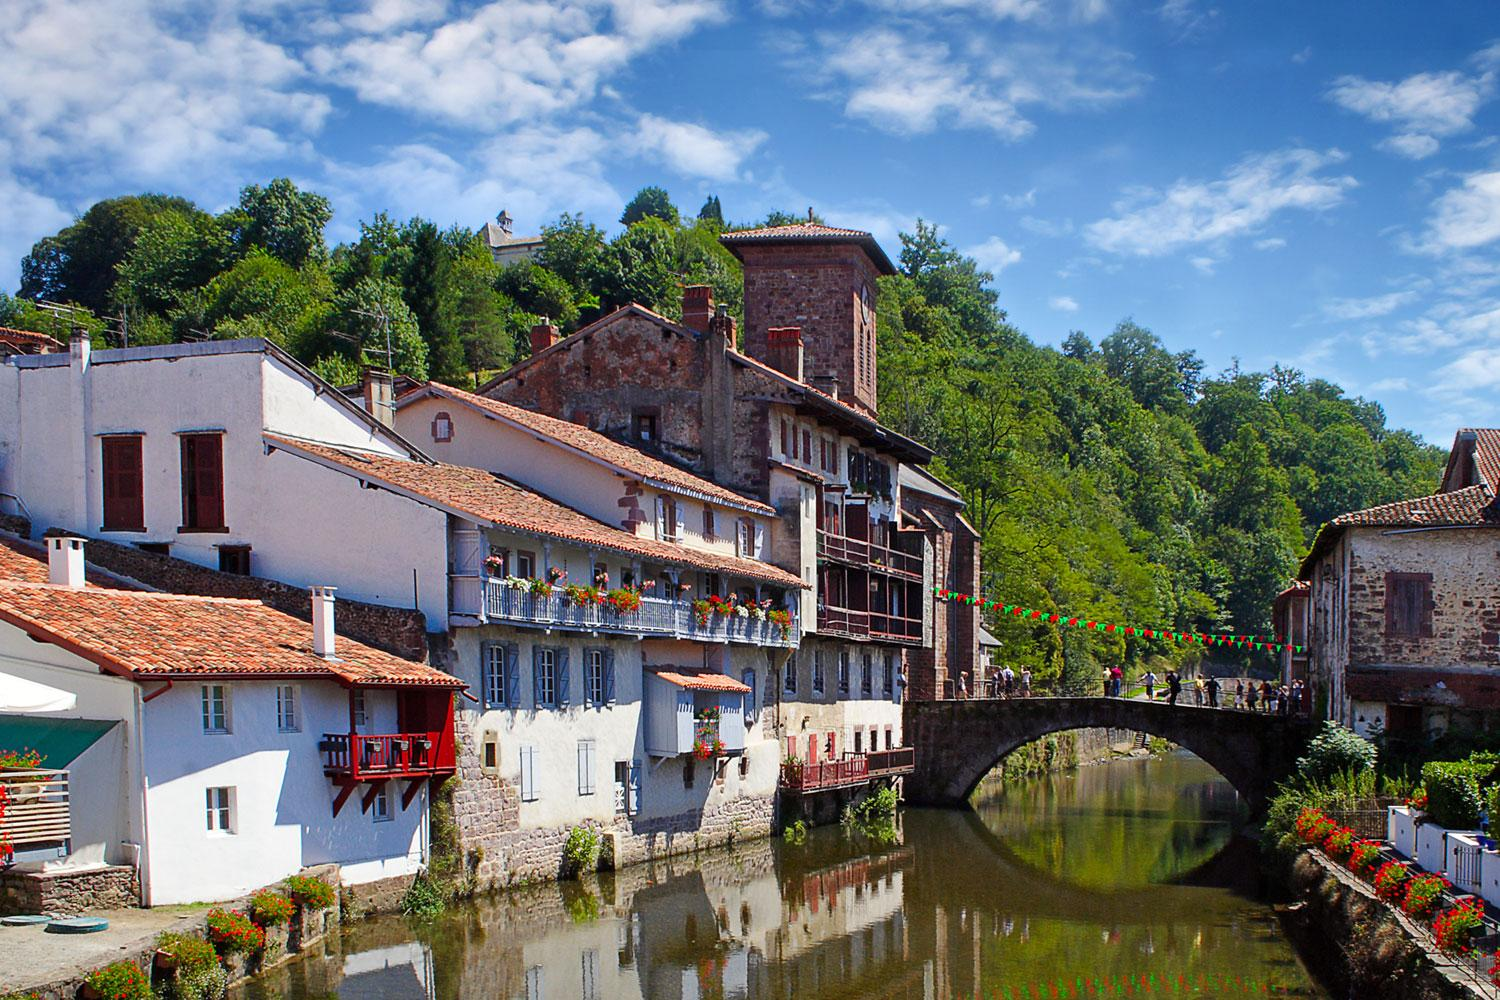 Camino Le Puy Way: Stage 6